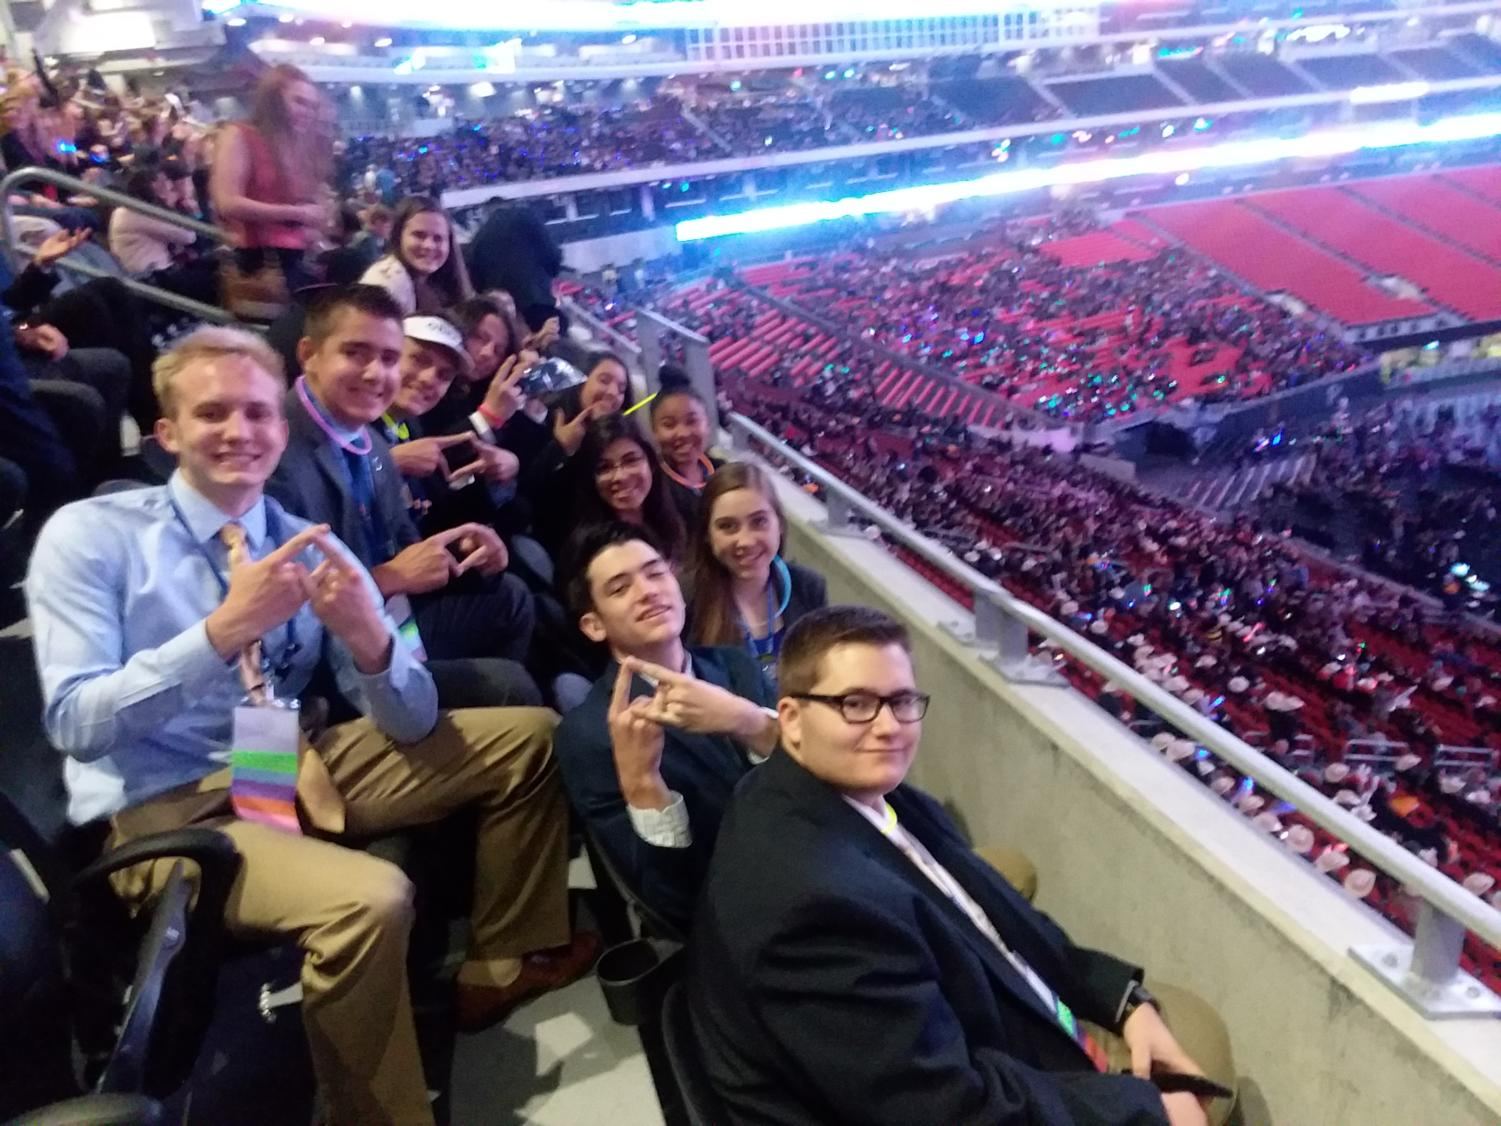 DECA students sit ad wait for the final resultes at the International DECA Competition.